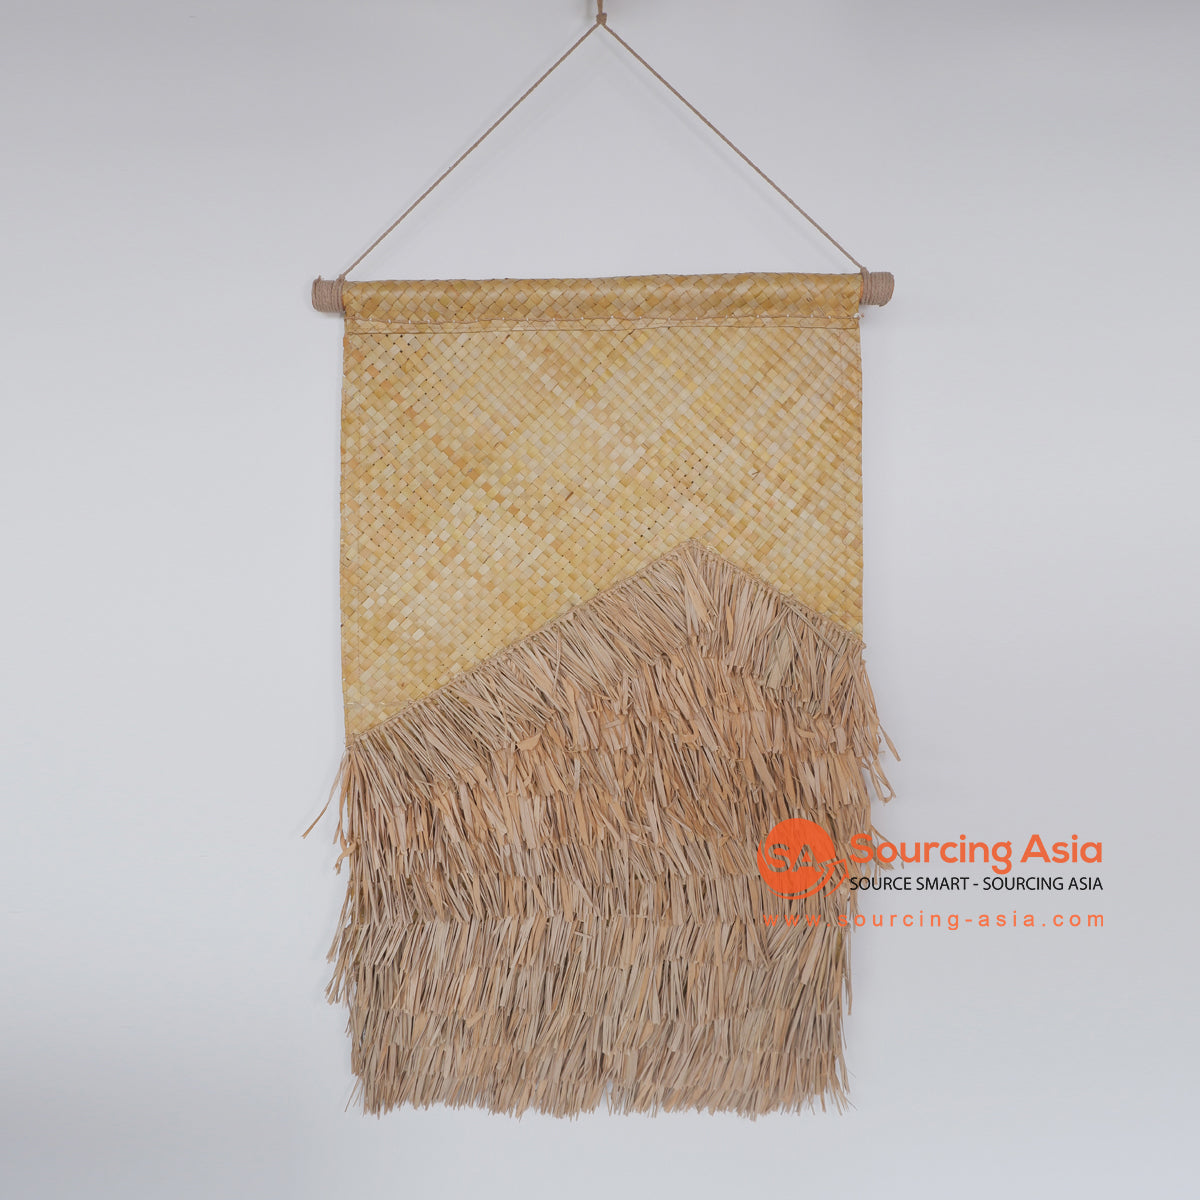 MRC328 NATURAL WOVEN PANDANUS AND MENDONG WALL DECORATION